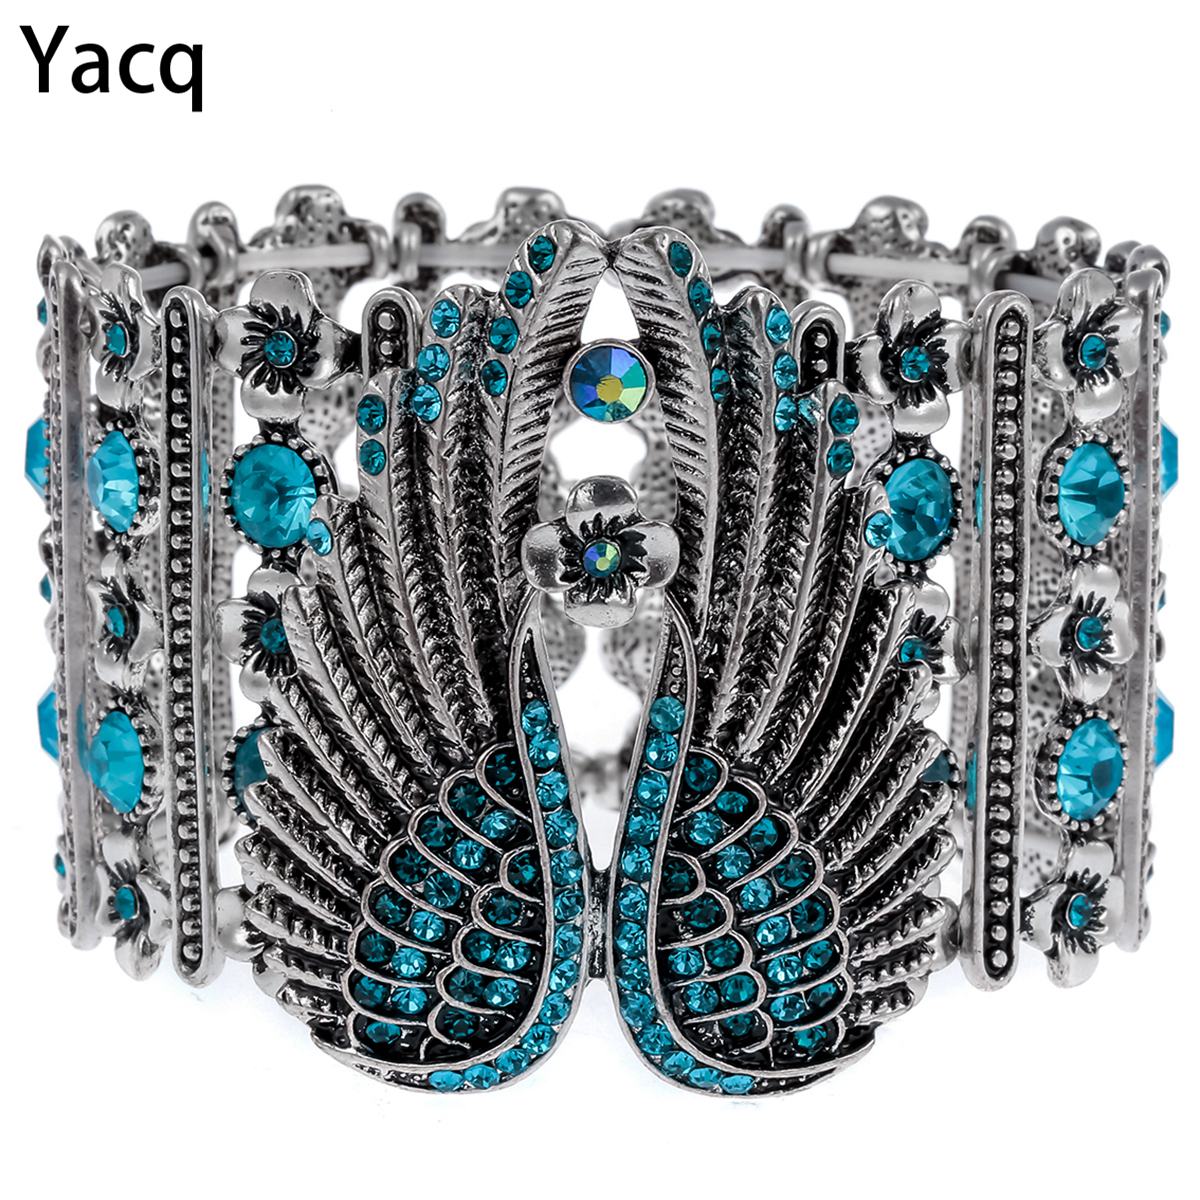 YACQ Guardian Angel Wings Stretch Manschett Armband för kvinnor Biker Crystal Punk Smycken Gift Antik Silver Färg Dropshipping D05